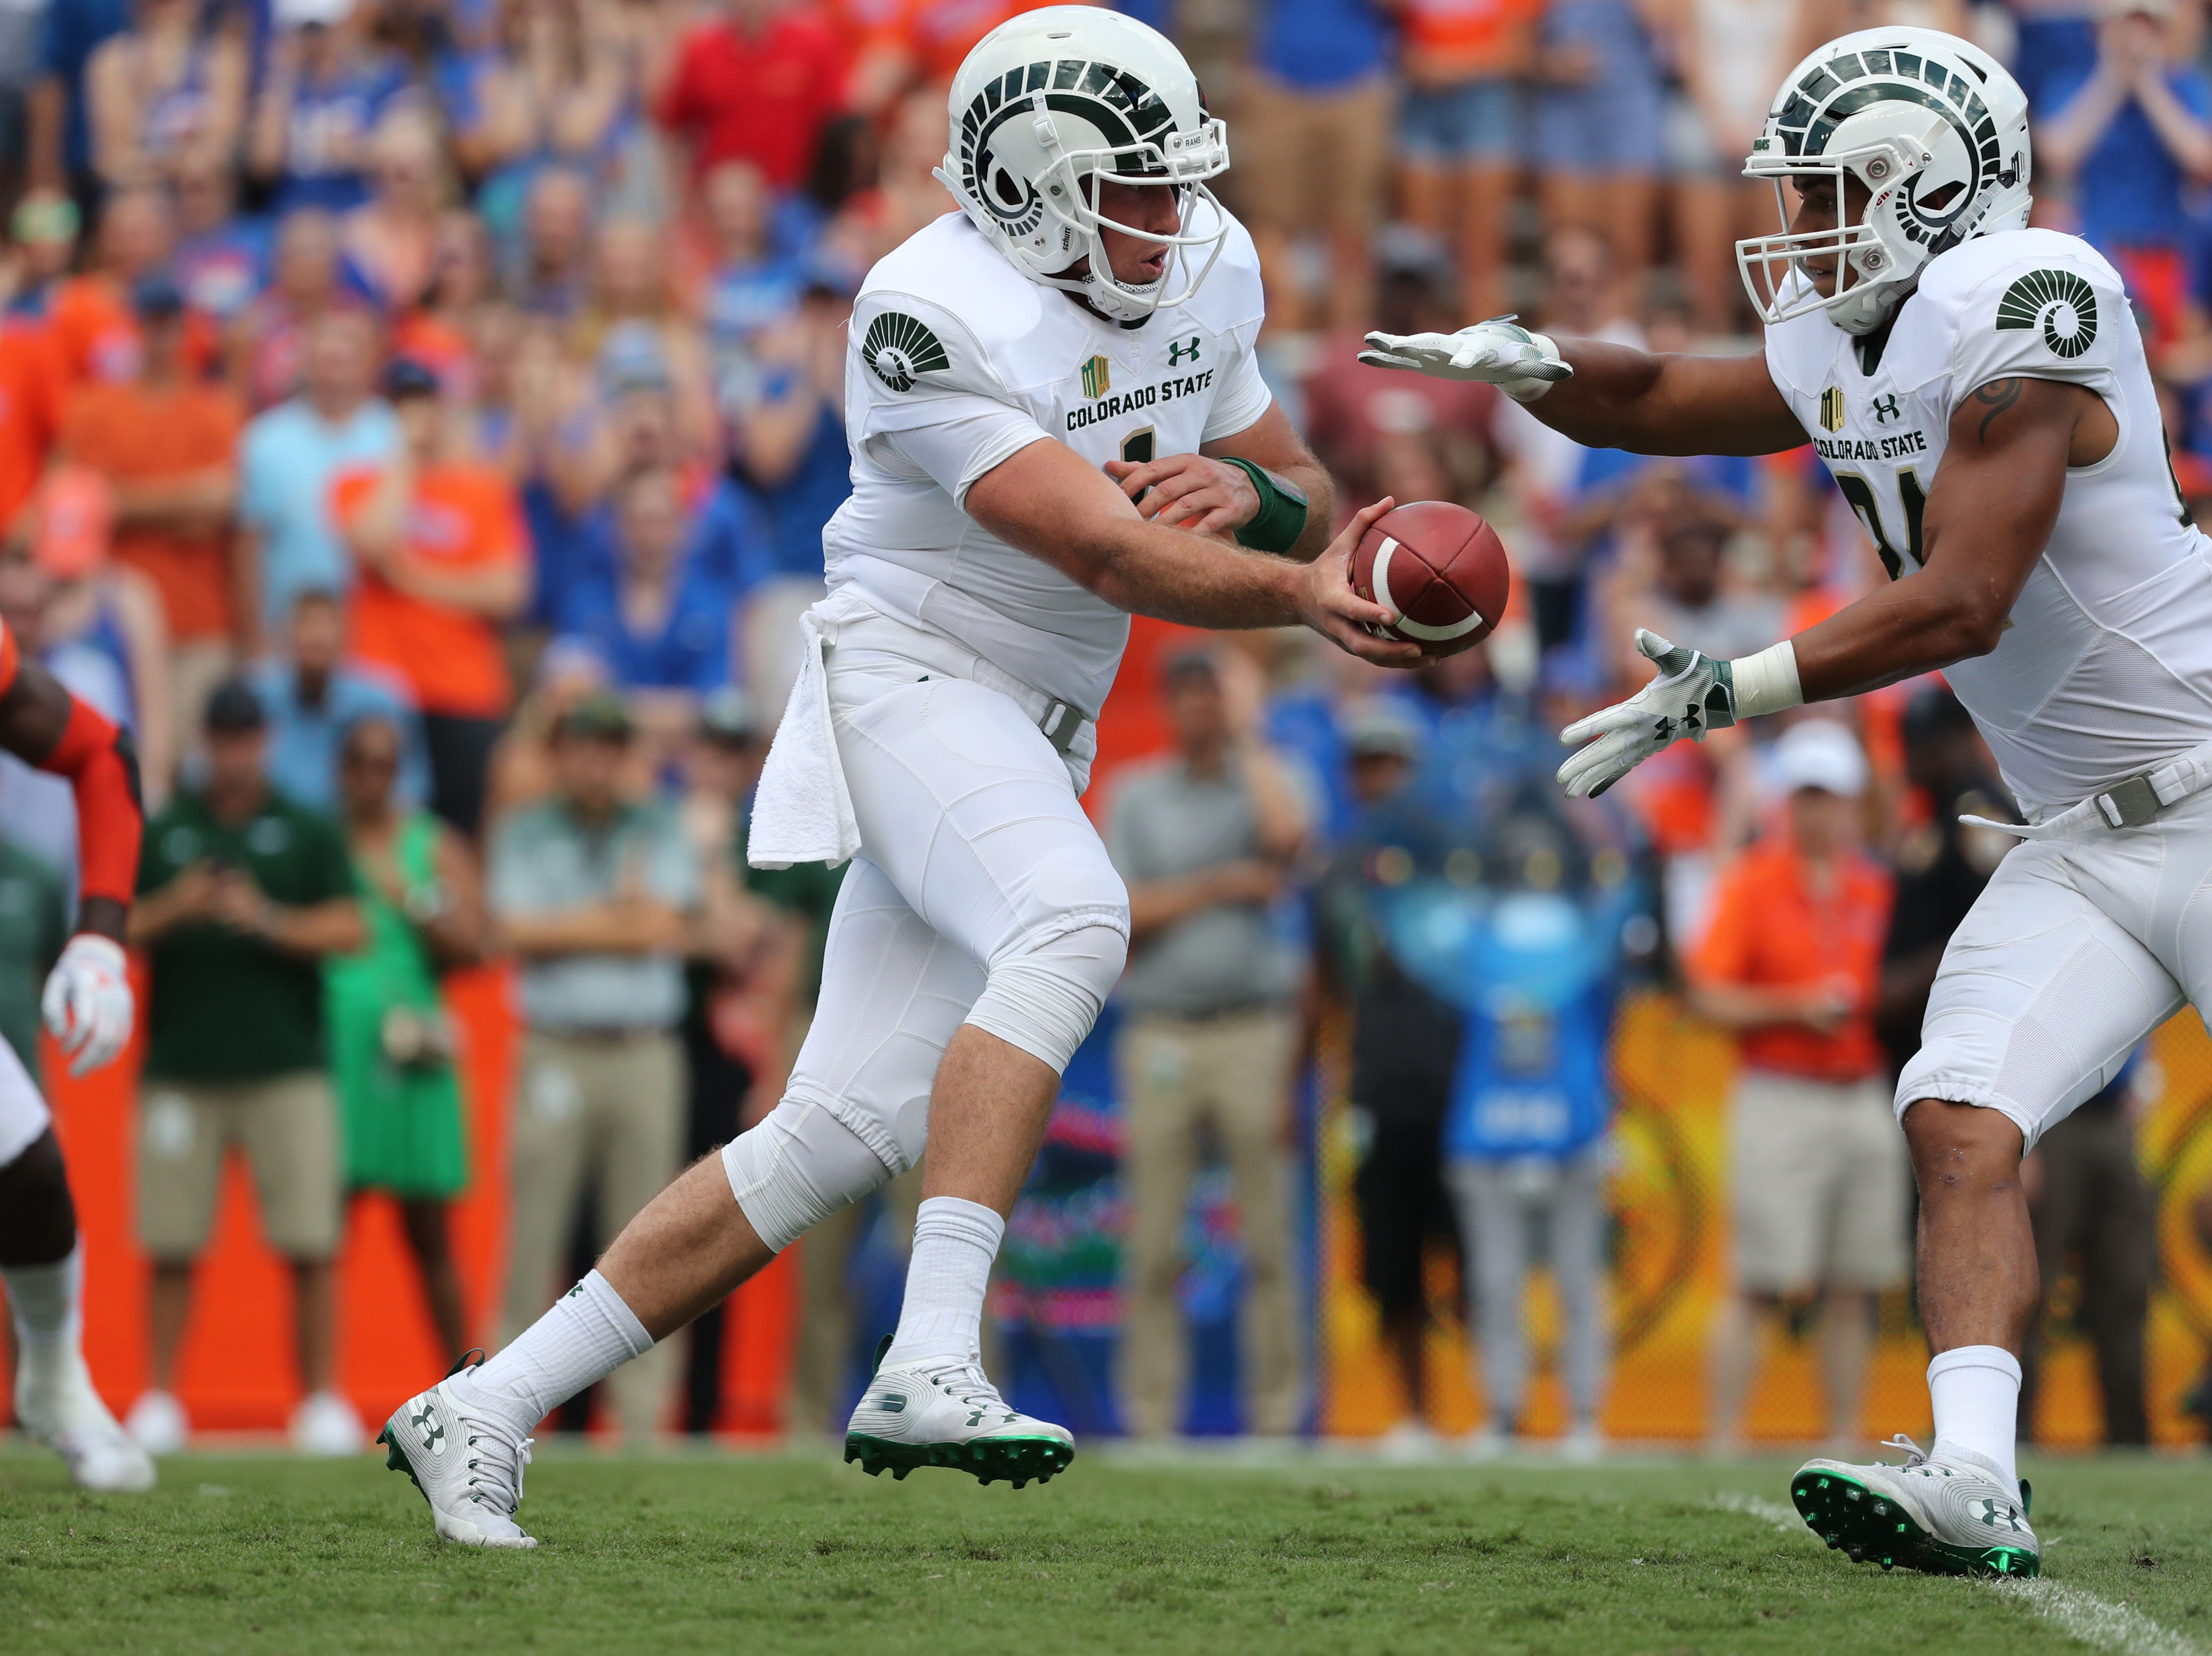 Sep 15, 2018; Gainesville, FL, USA; Colorado State Rams quarterback K.J. Carta-Samuels (1) hands the ball off to Colorado State Rams running back Izzy Matthews (24) against the Florida Gators during the first quarter at Ben Hill Griffin Stadium. Mandatory Credit: Kim Klement-USA TODAY Sports